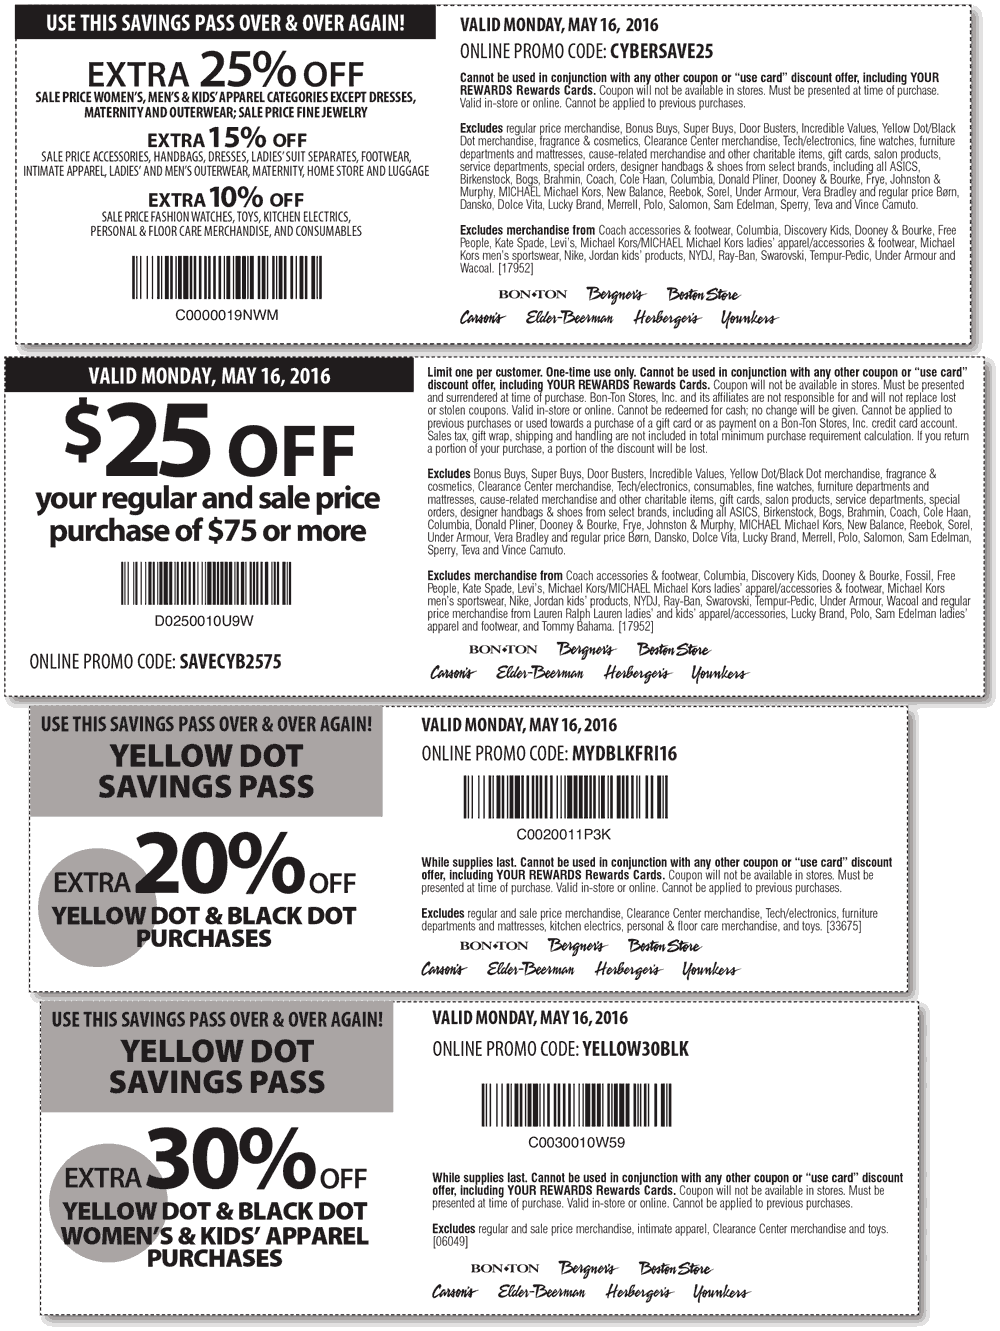 Bon Ton Coupon July 2017 $25 off $75 & more today at Carsons, Bon Ton & sister stores, or online via promo code SAVECYB2575